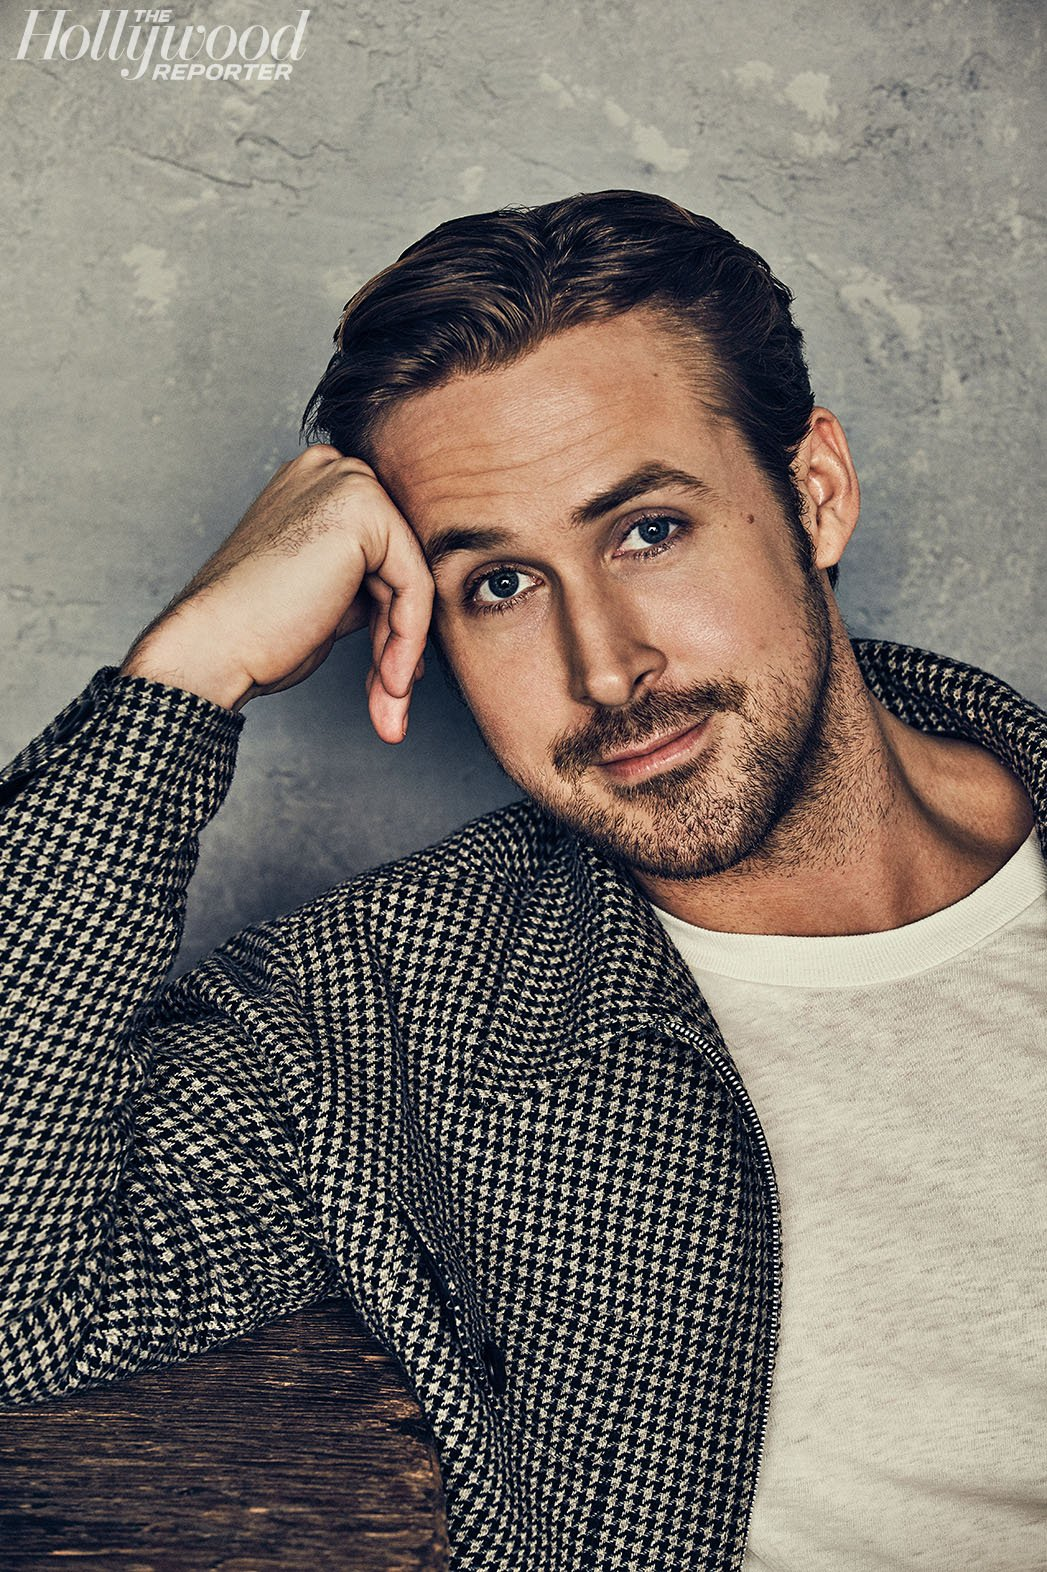 Ryan Gosling photographed for The Hollywood Reporter.